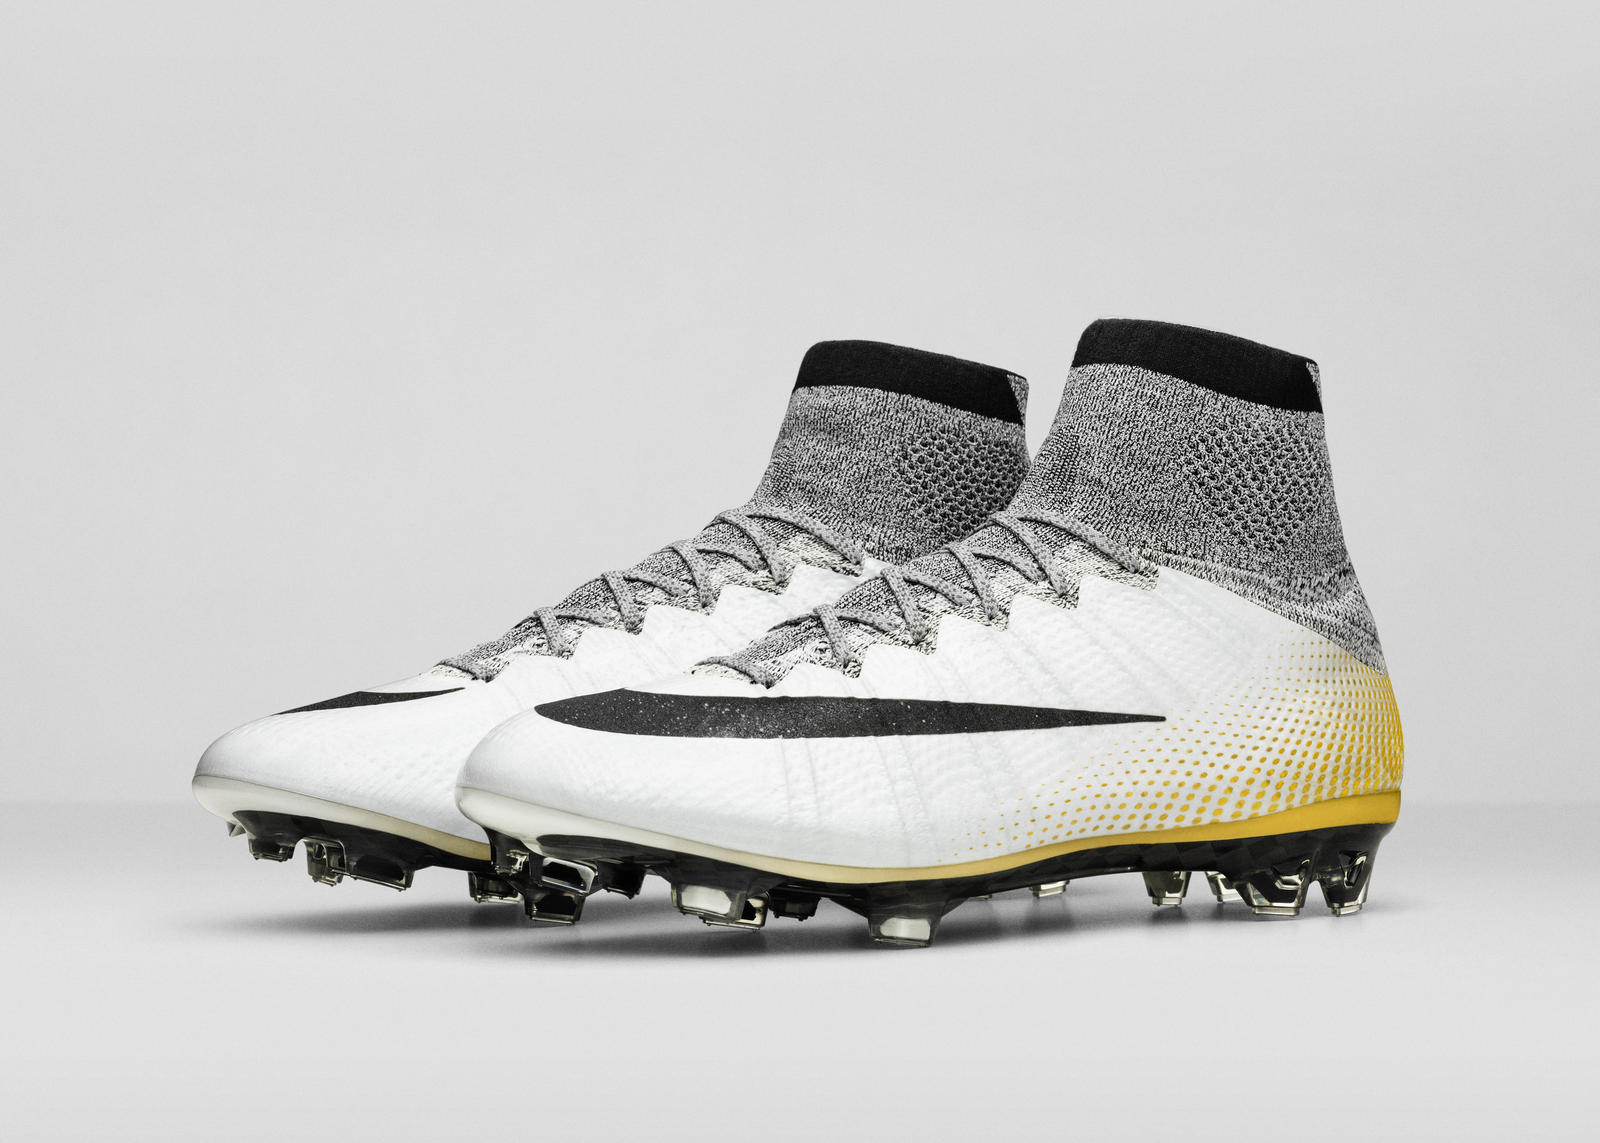 ... aliexpress nike sp16 superfly cr7 gold pair view 06 v2 rectangle 1600  8bc6d f817f f308fbdc29be4